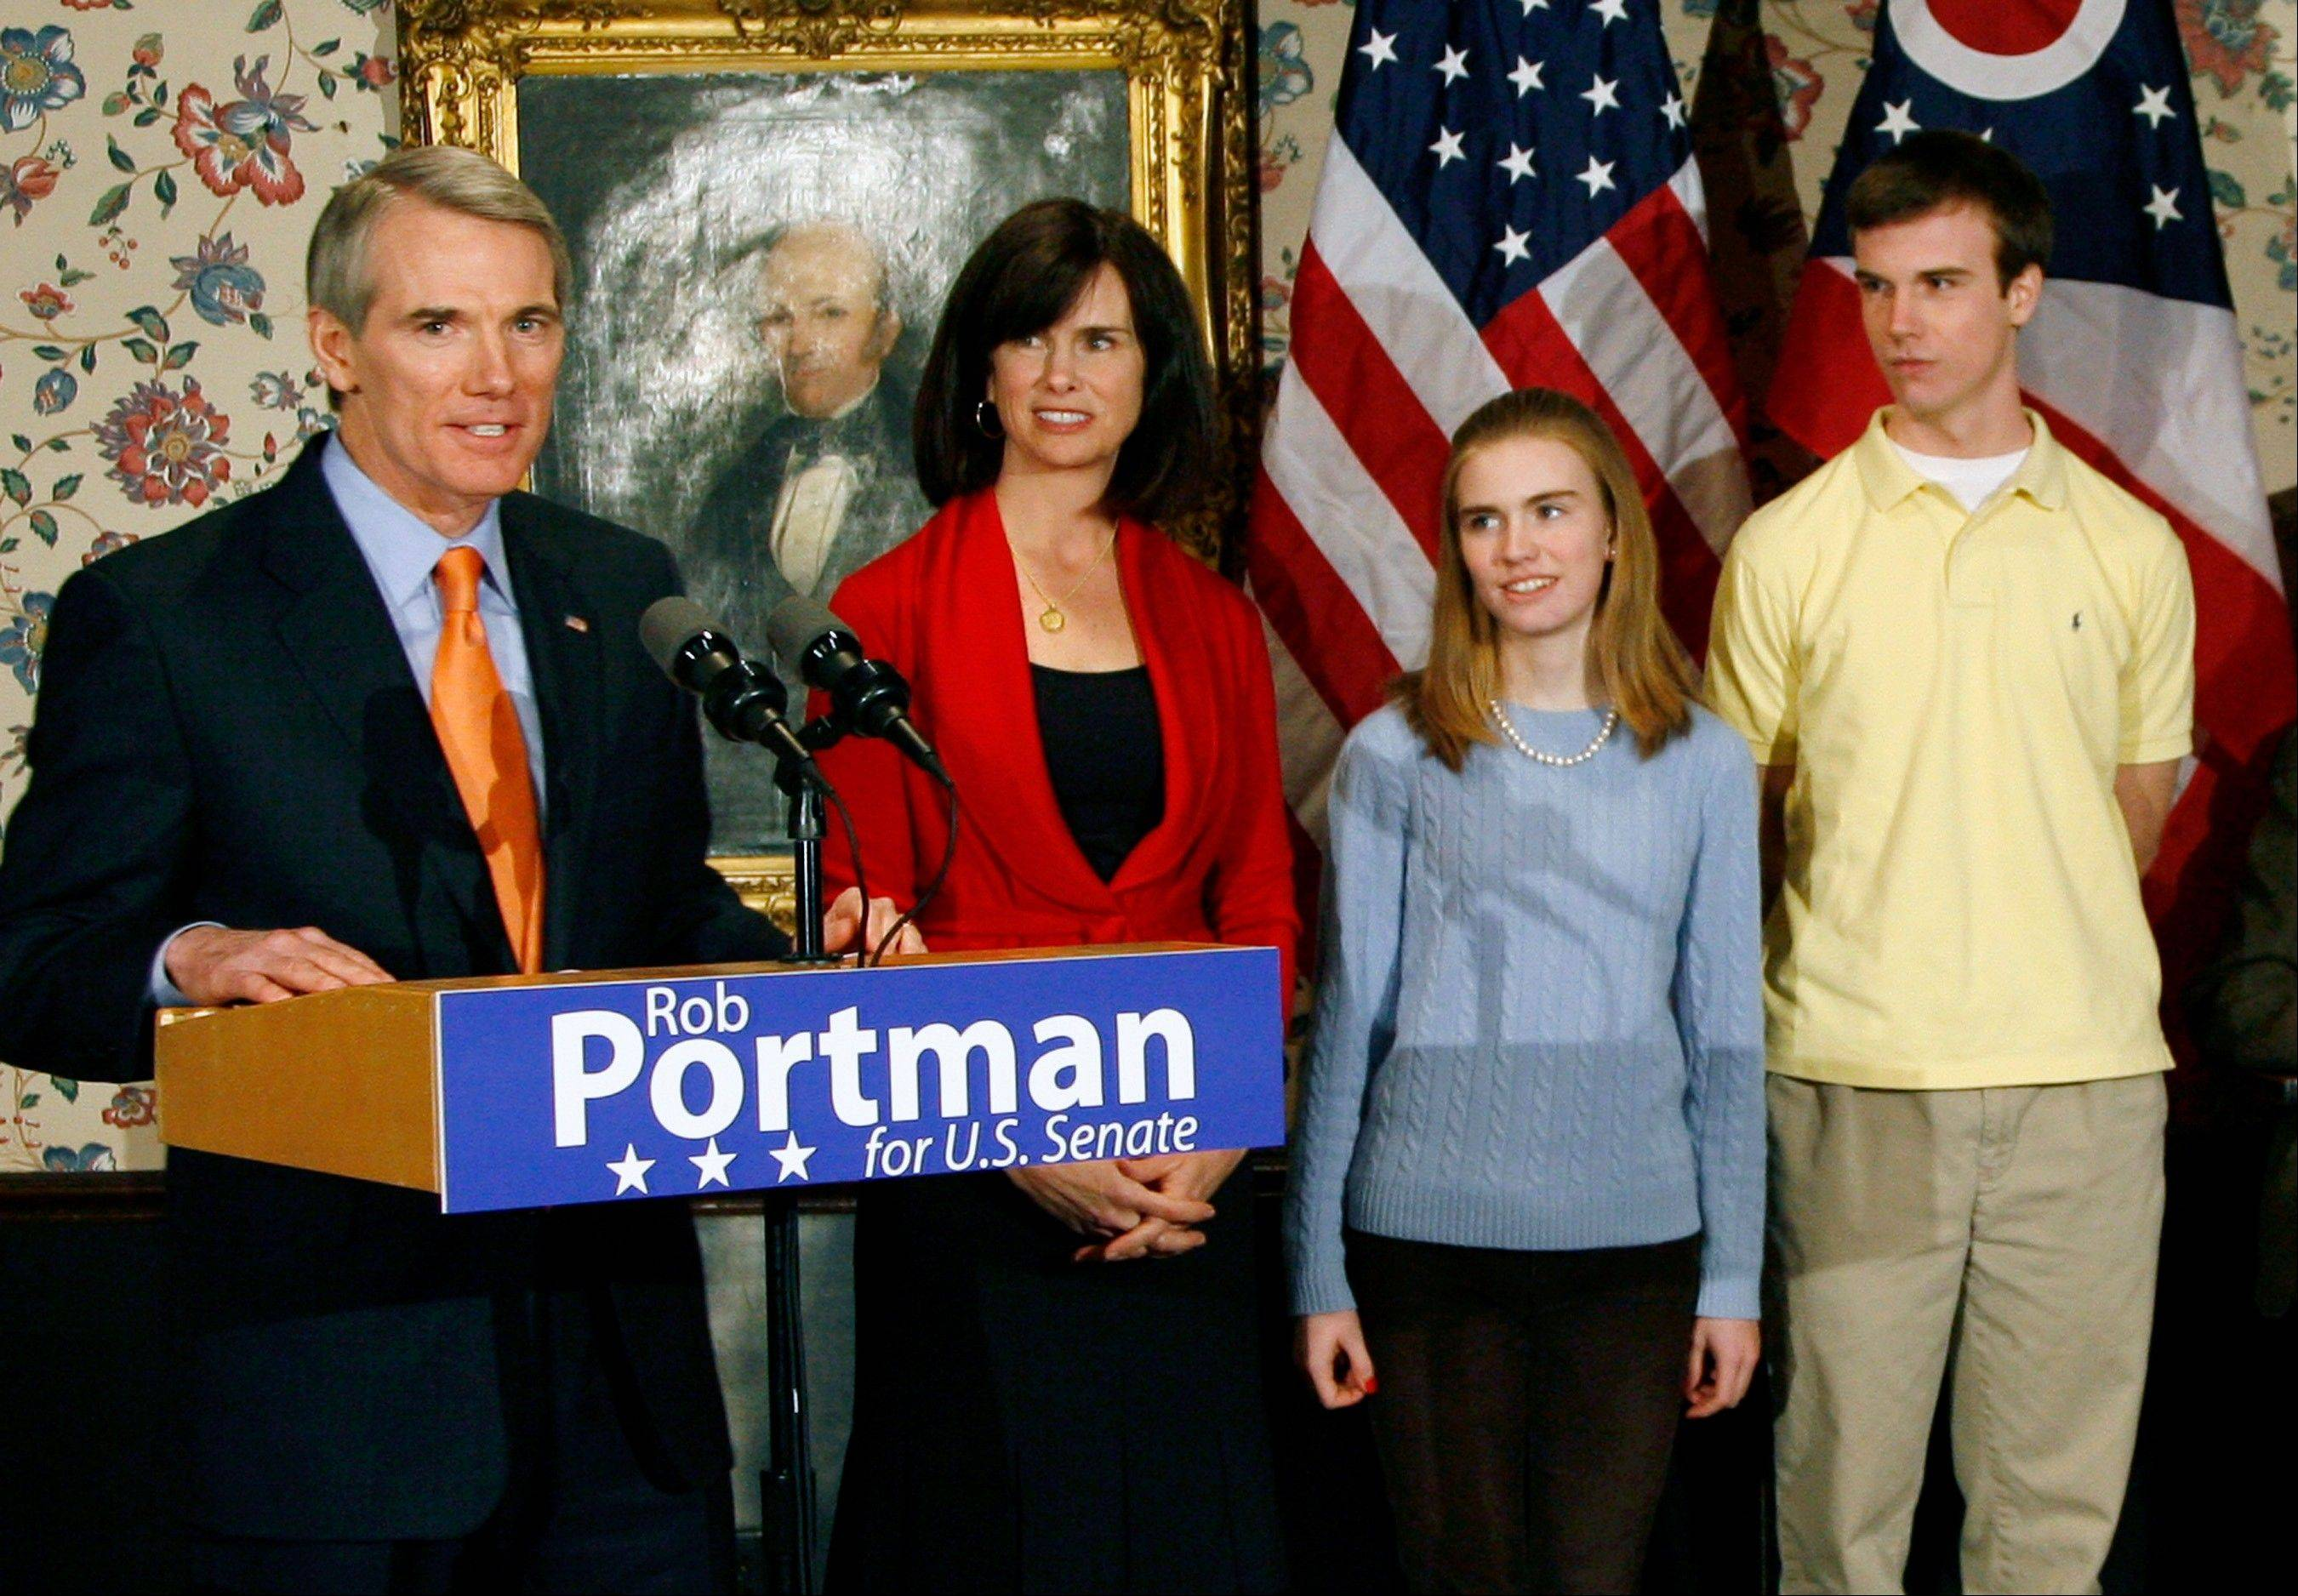 U.S. Sen. Rob Portman, from left, with his wife, Jane, daughter Sally, and son Will, stands after announcing that he will run for the U.S. Senate, in Lebanon, Ohio. Portman is now supporting gay marriage and says his reversal on the issue began when he learned his son Will is gay.